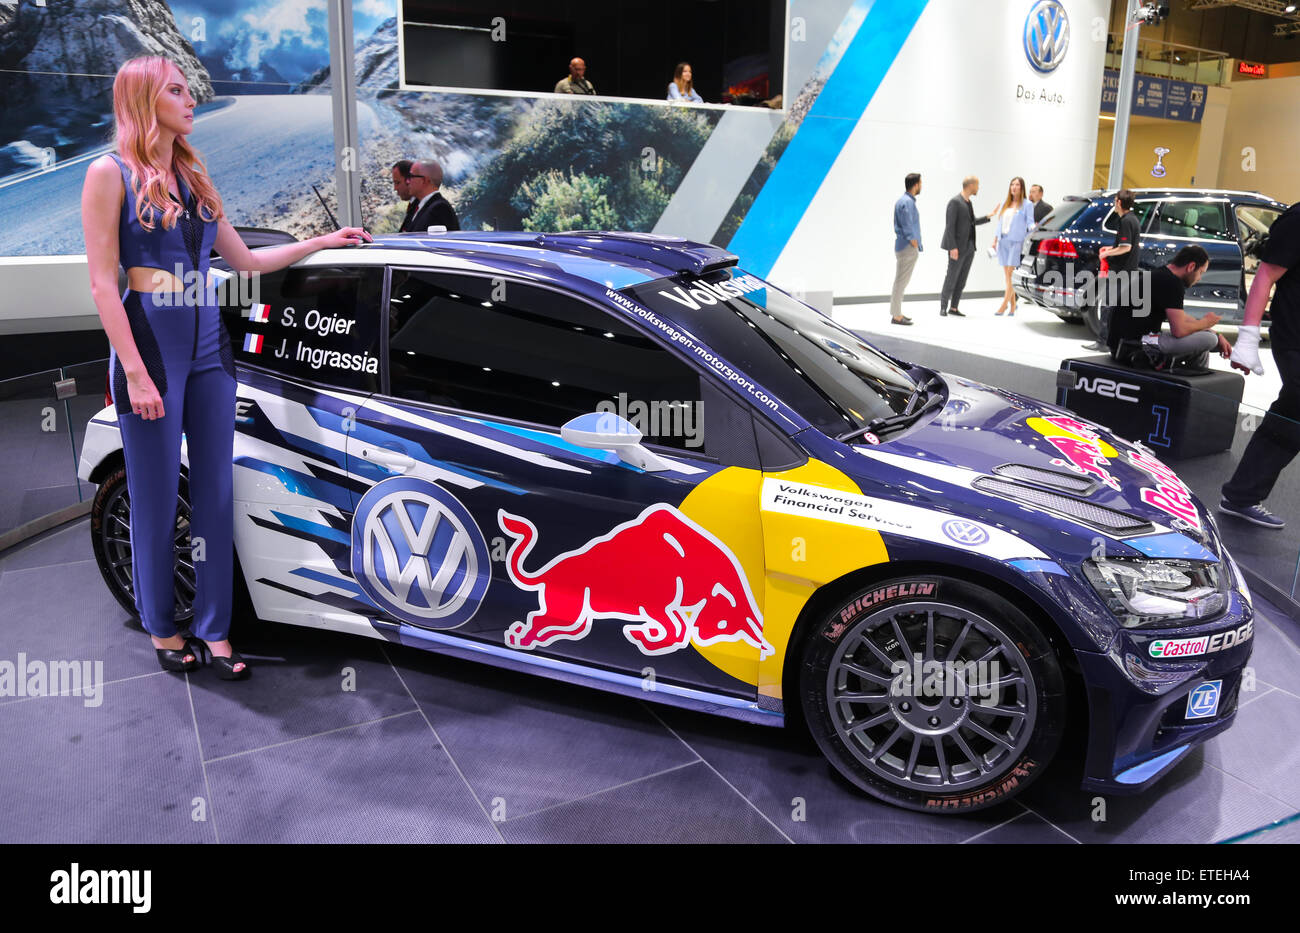 Volkswagen Polo Wrc High Resolution Stock Photography And Images Alamy